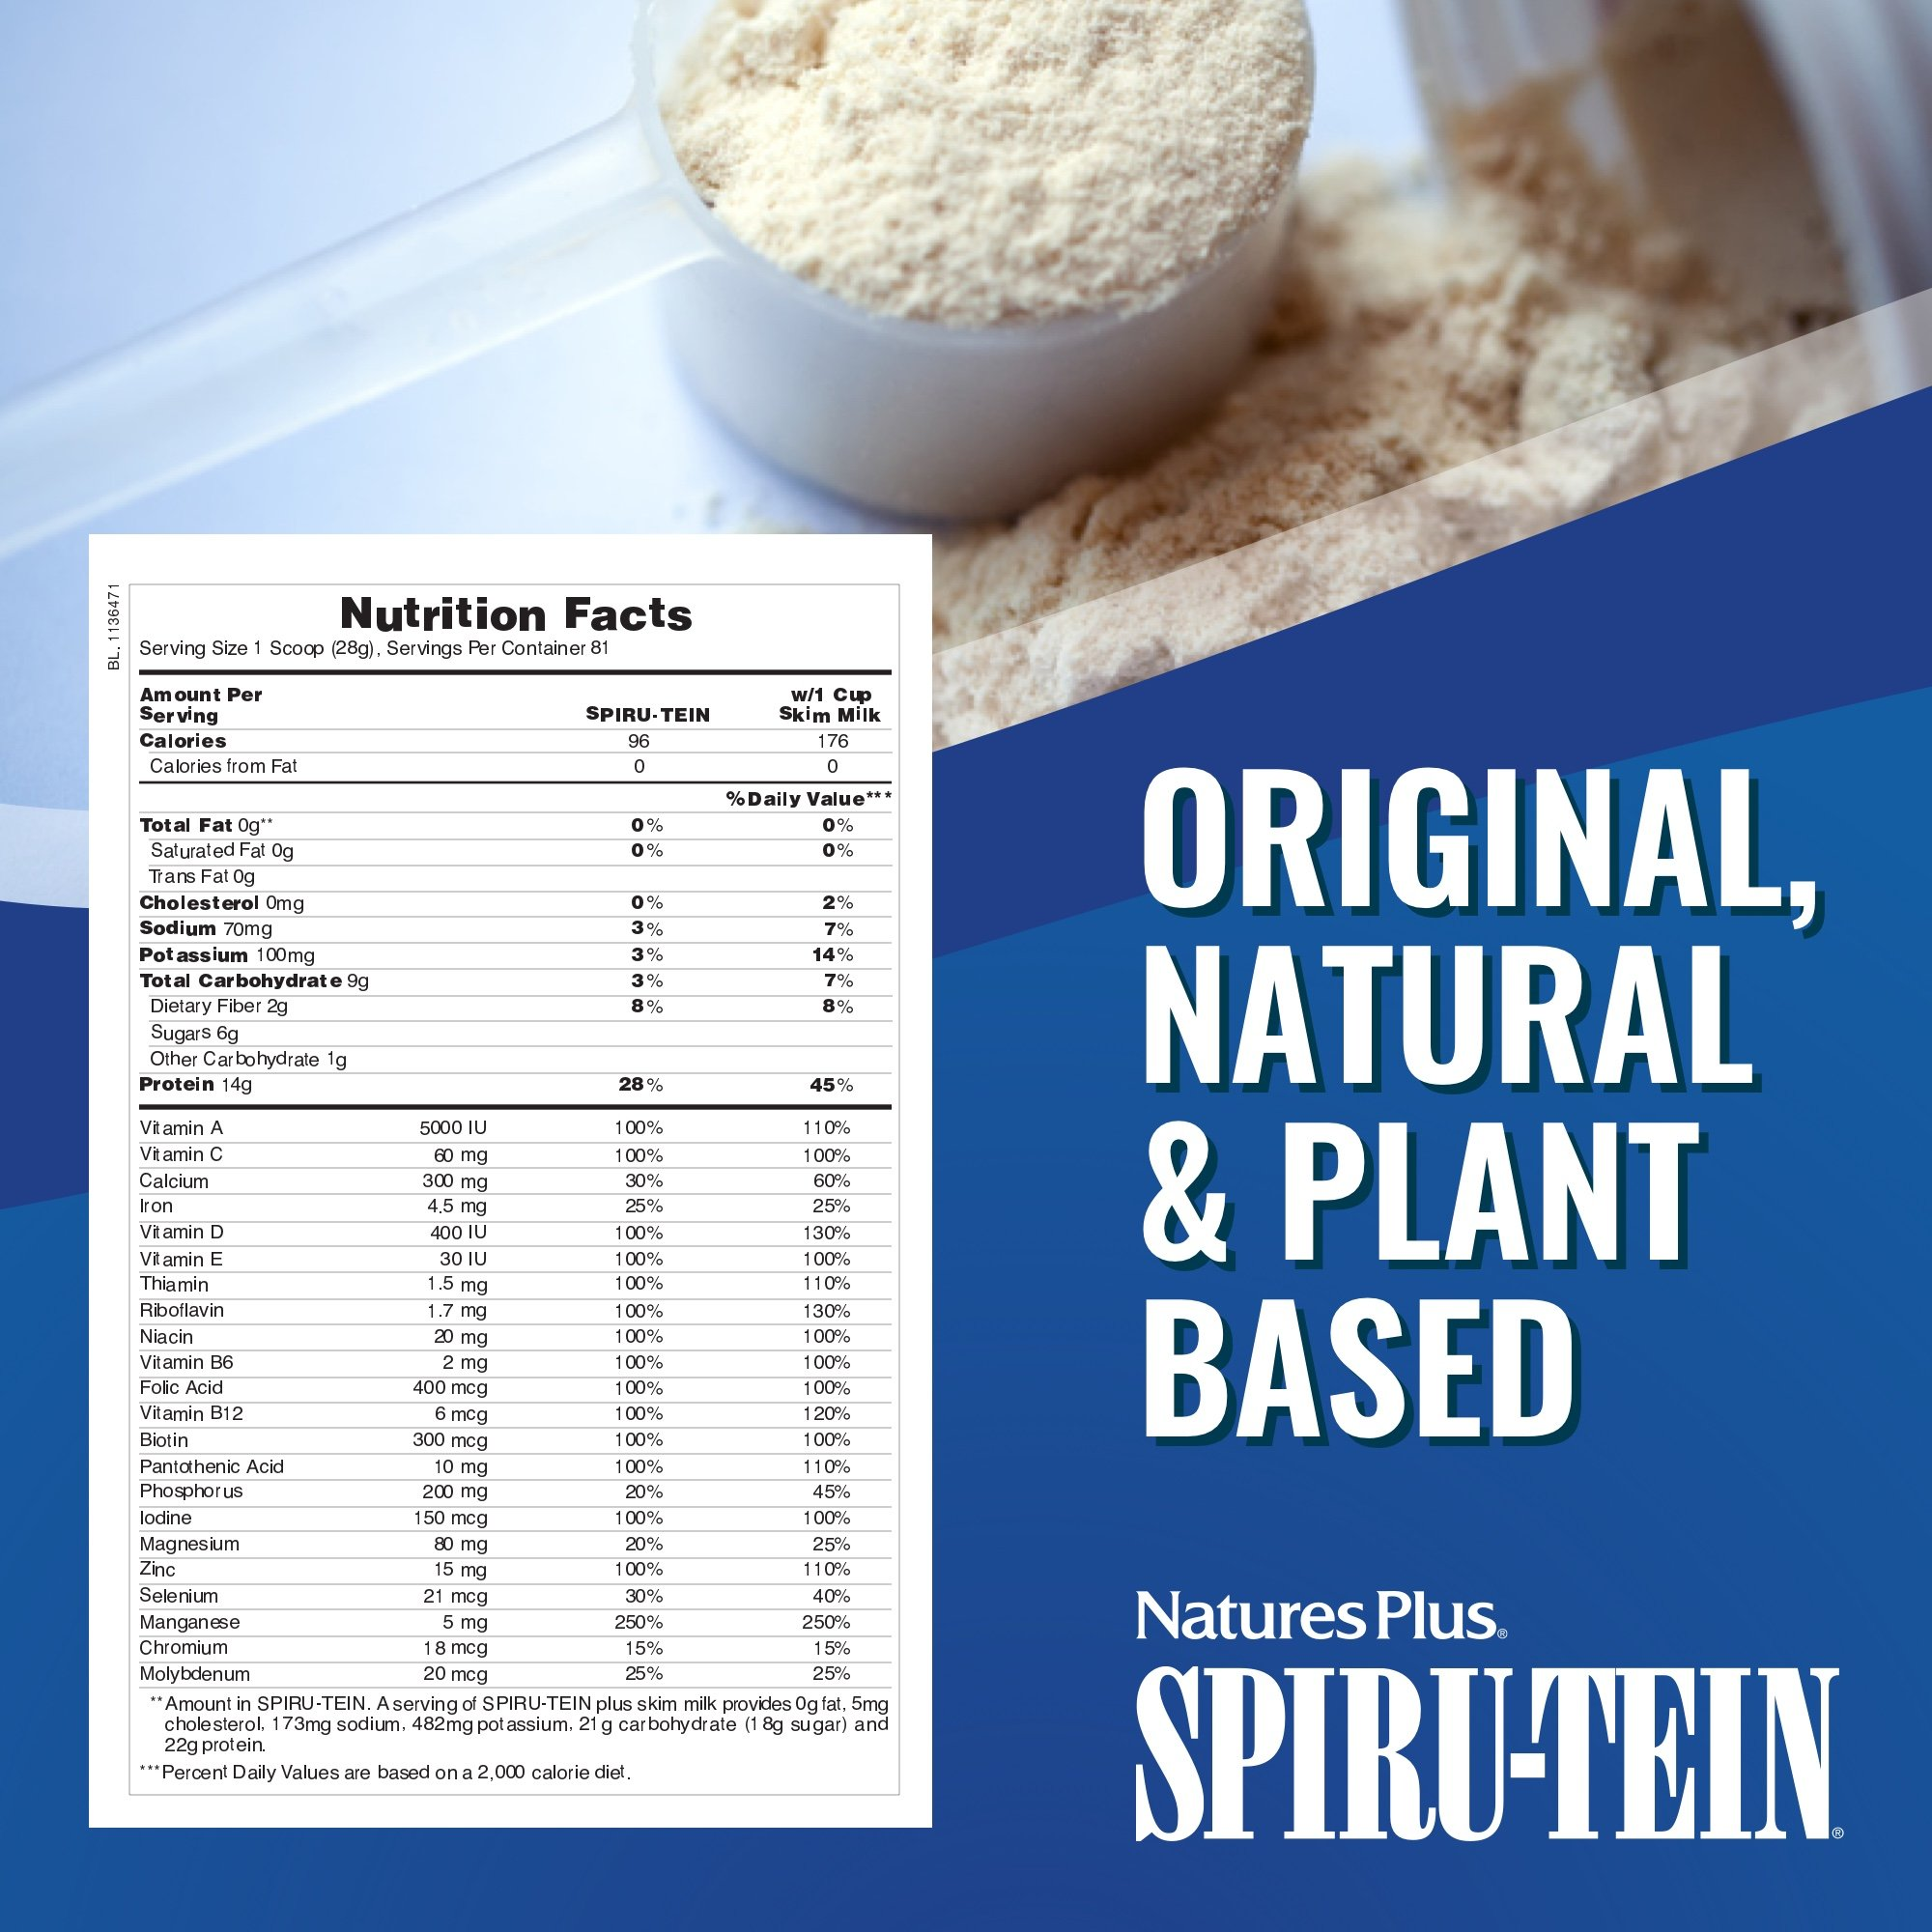 NaturesPlus SPIRU-TEIN Shake - Chocolate - 5 lbs, Spirulina Protein Powder - Plant Based Meal Replacement, Vitamins & Minerals For Energy - Vegetarian, Gluten-Free - 81 Servings by Nature's Plus (Image #6)